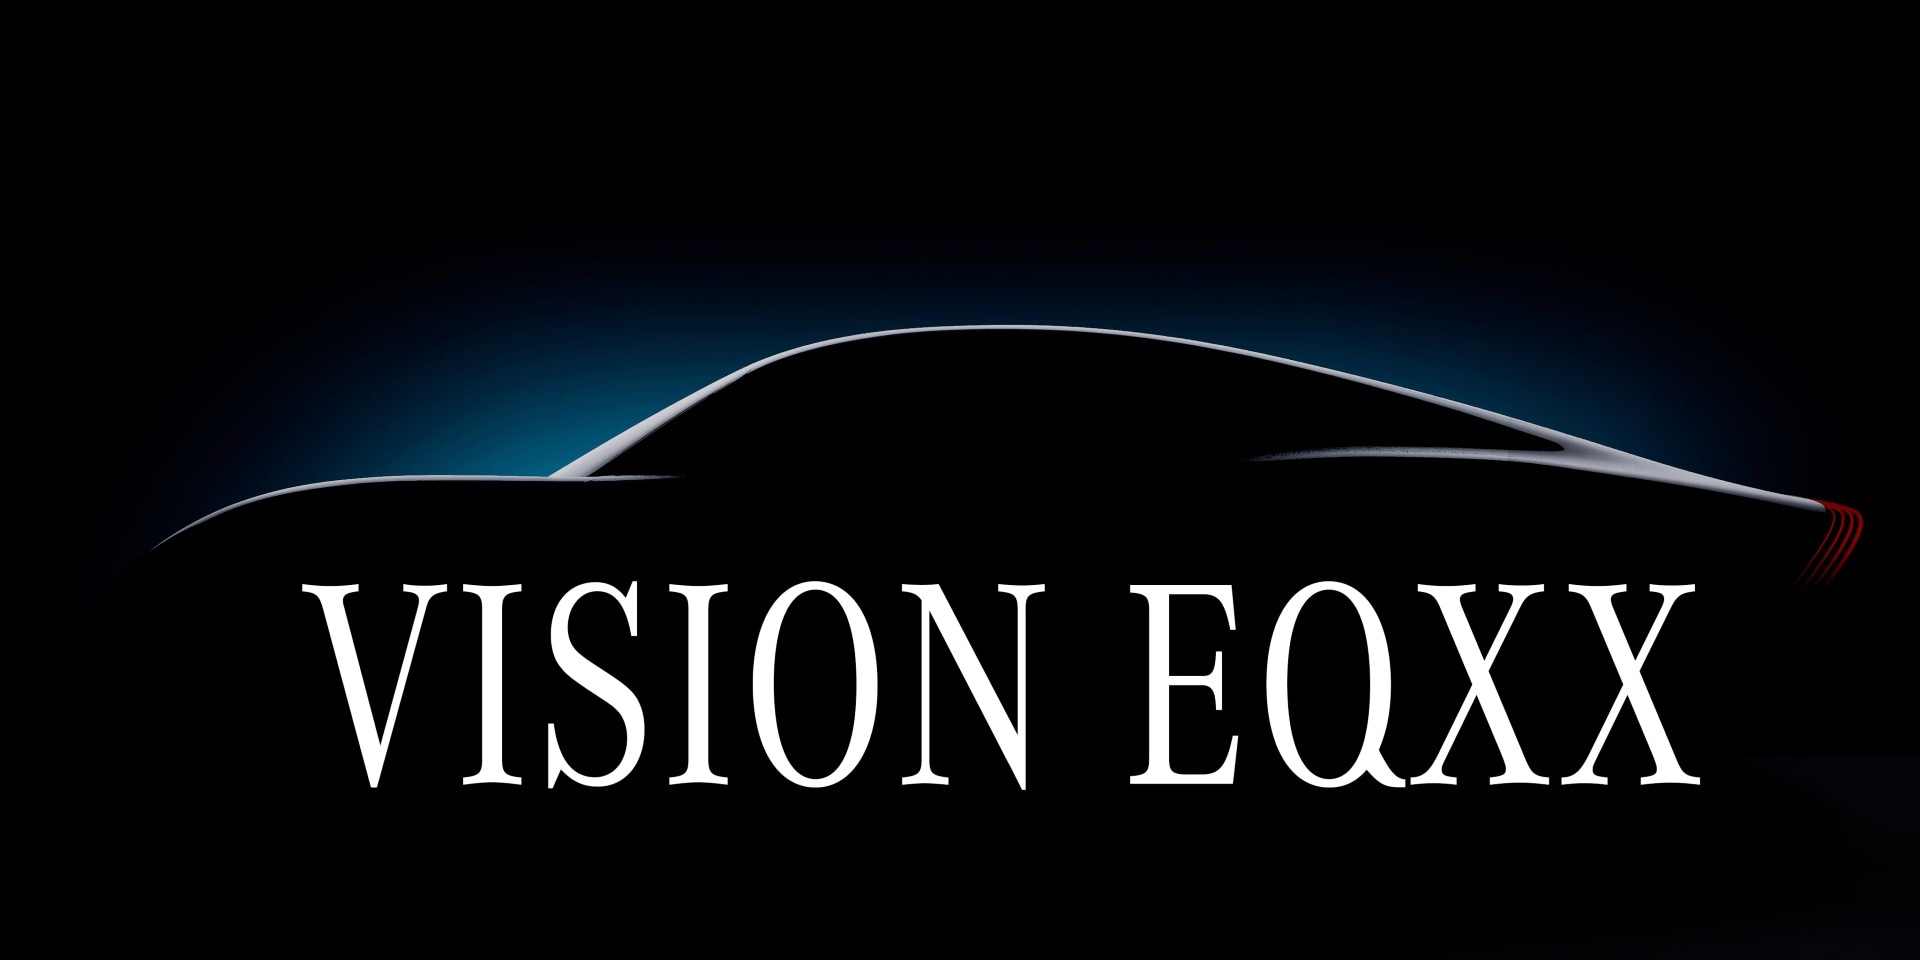 The Mercedes-Benz Vision EQXX will have a targeted real-world range of 1,000 km. Image: Mercedes-Benz